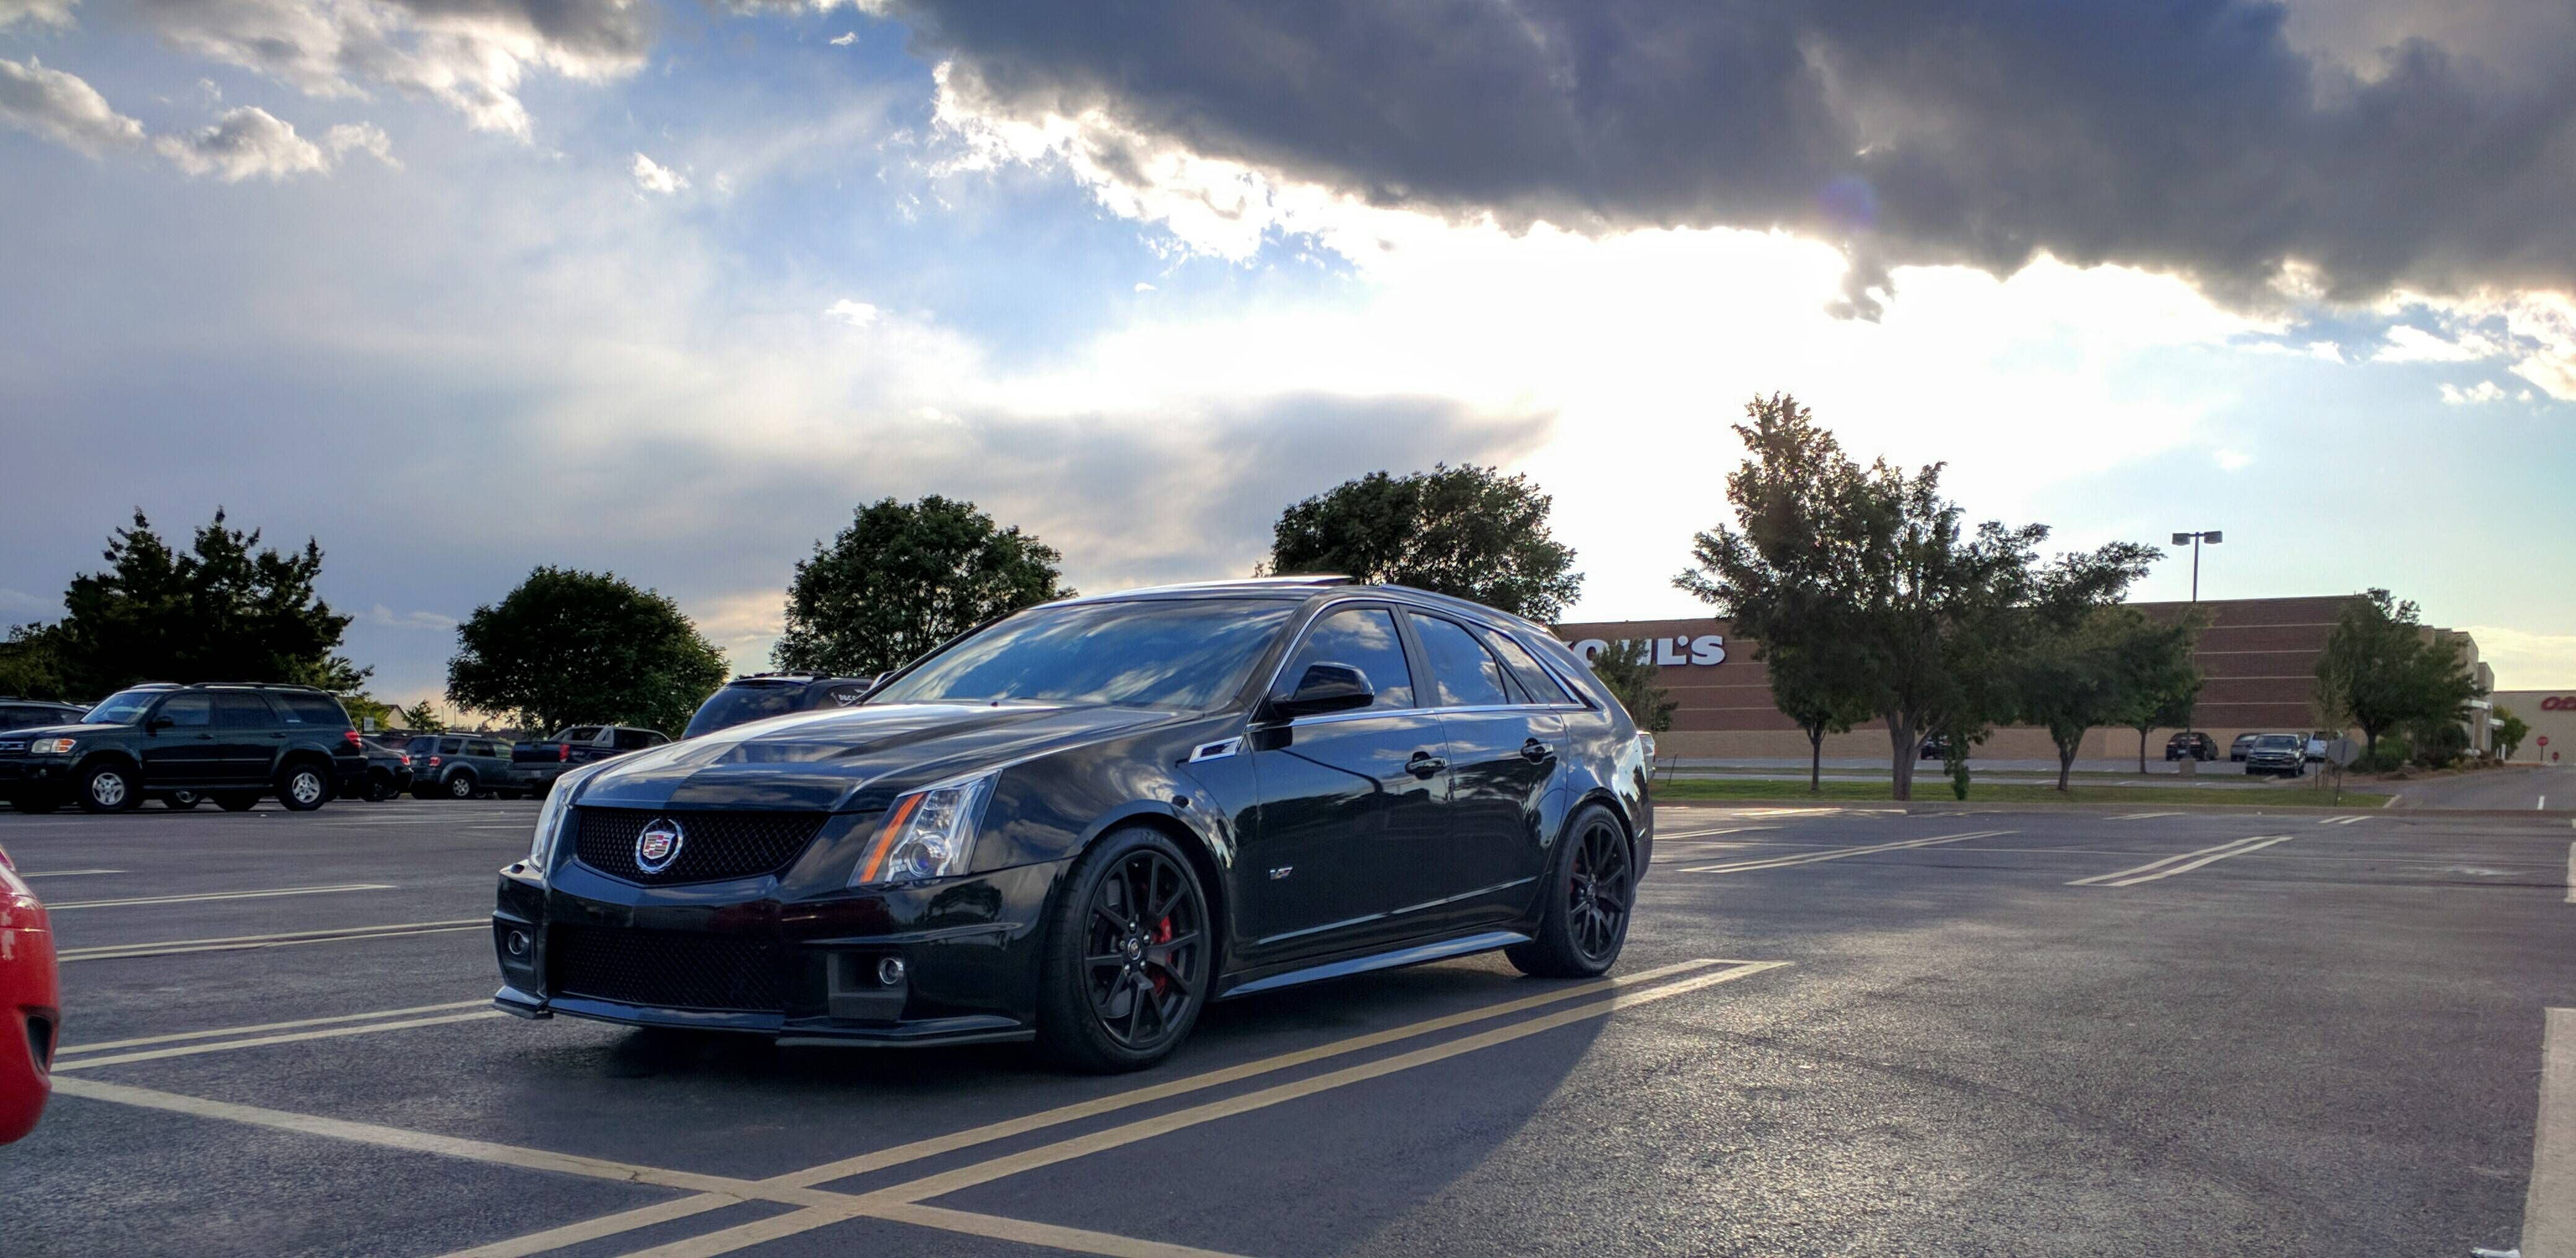 rather door for coupe cts cadillac sedan wagon car v or you updates of download would image sale